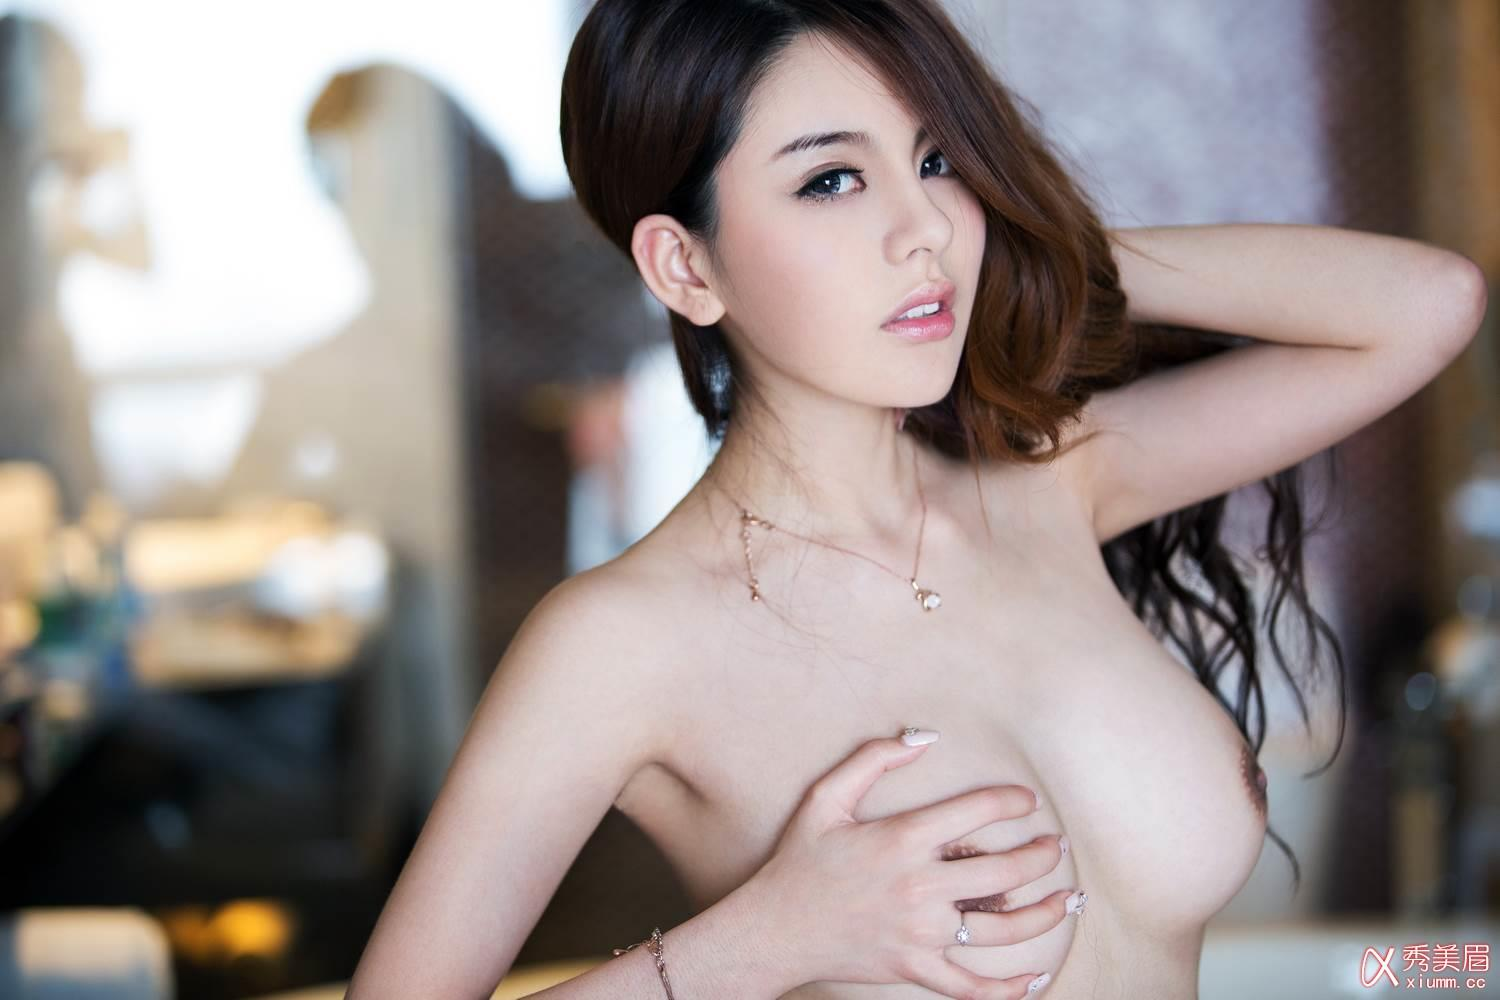 STUNNING chinese girls nude she definitely deserves